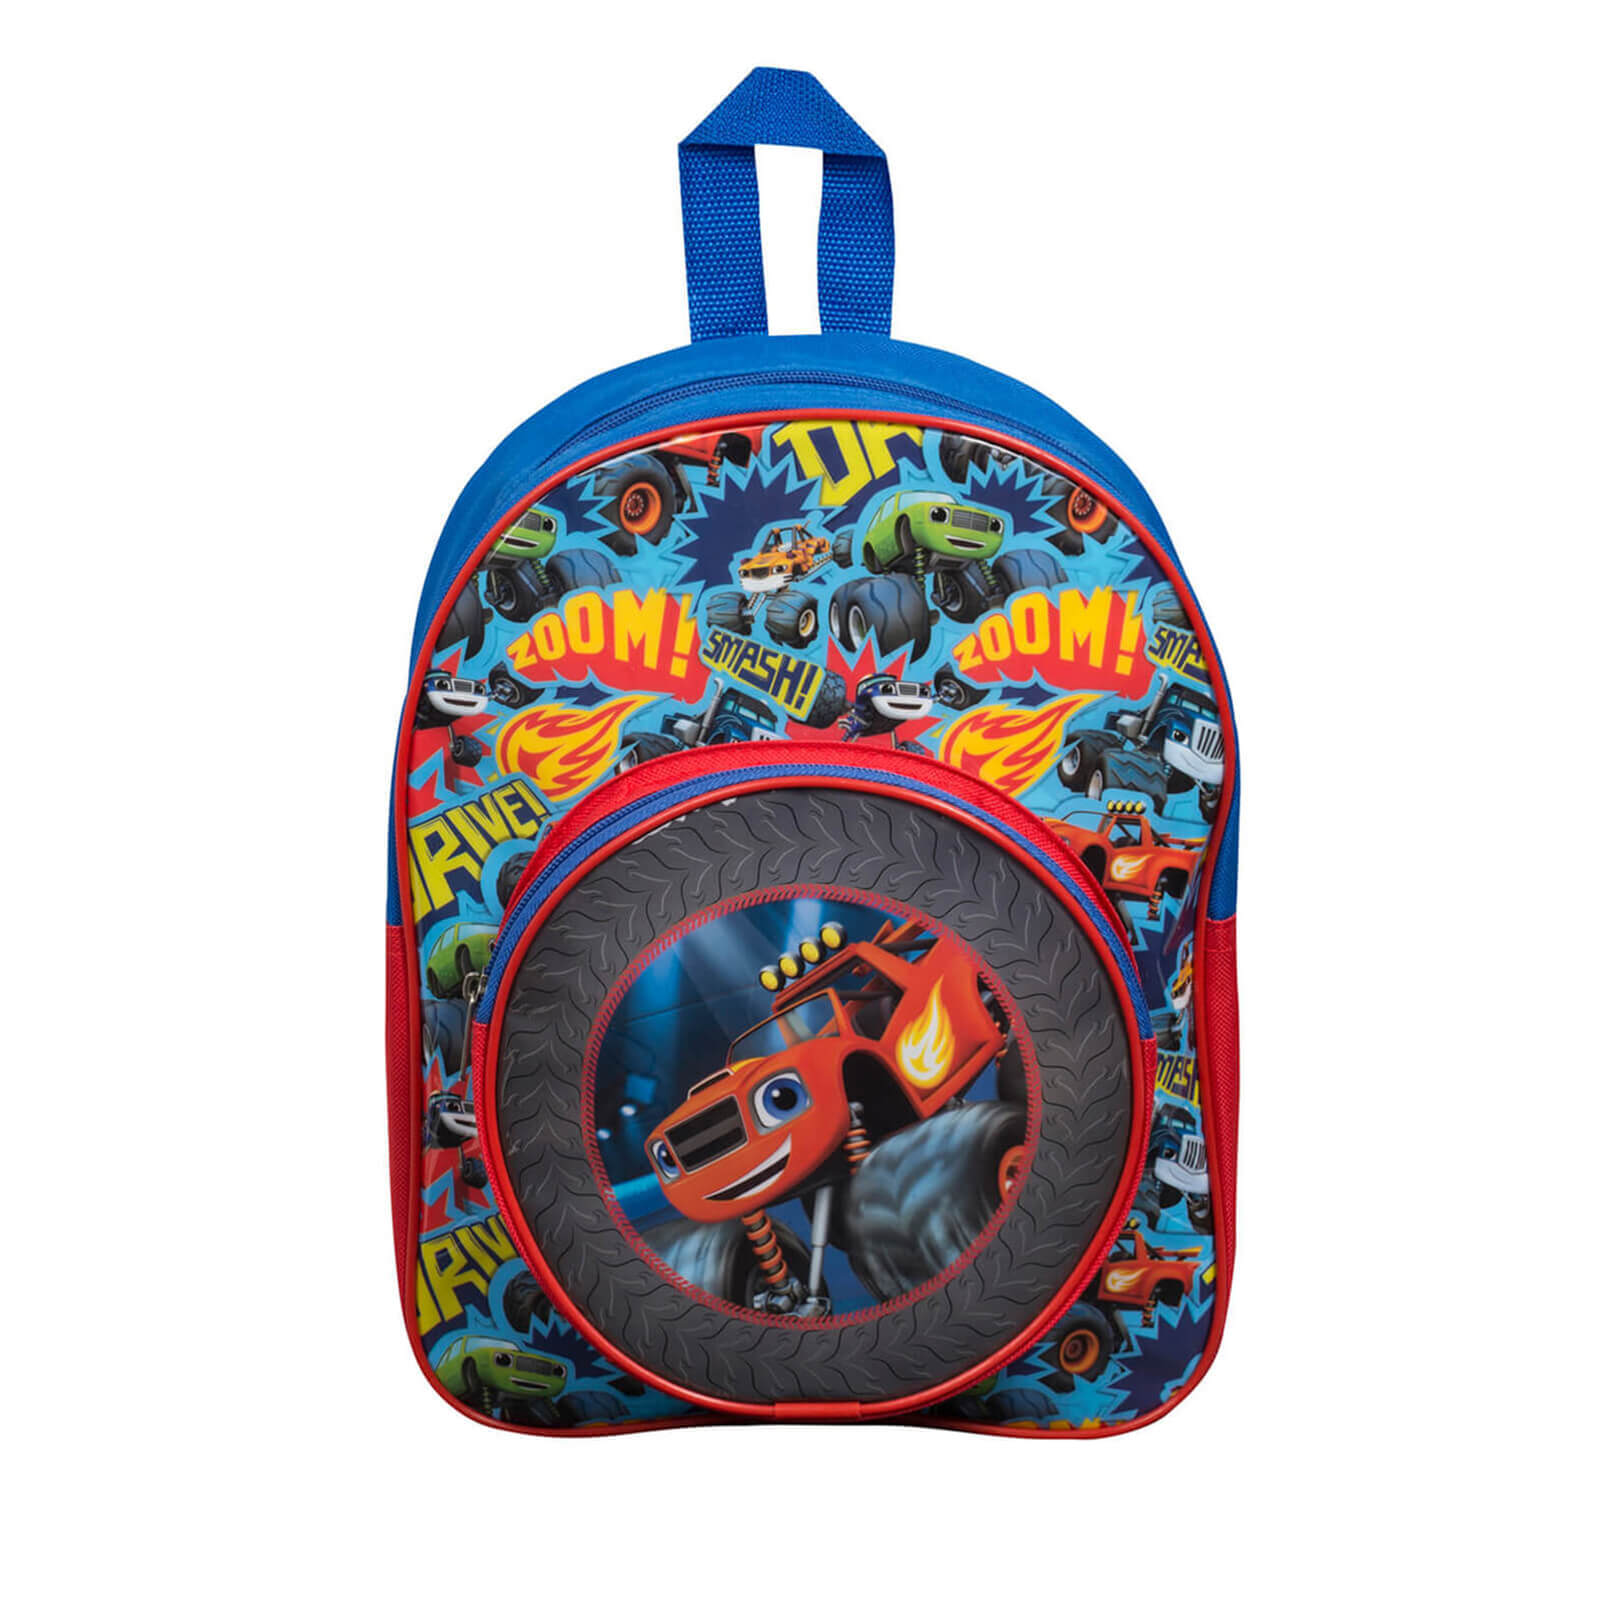 Nickelodeon Blaze Backpack - Blue